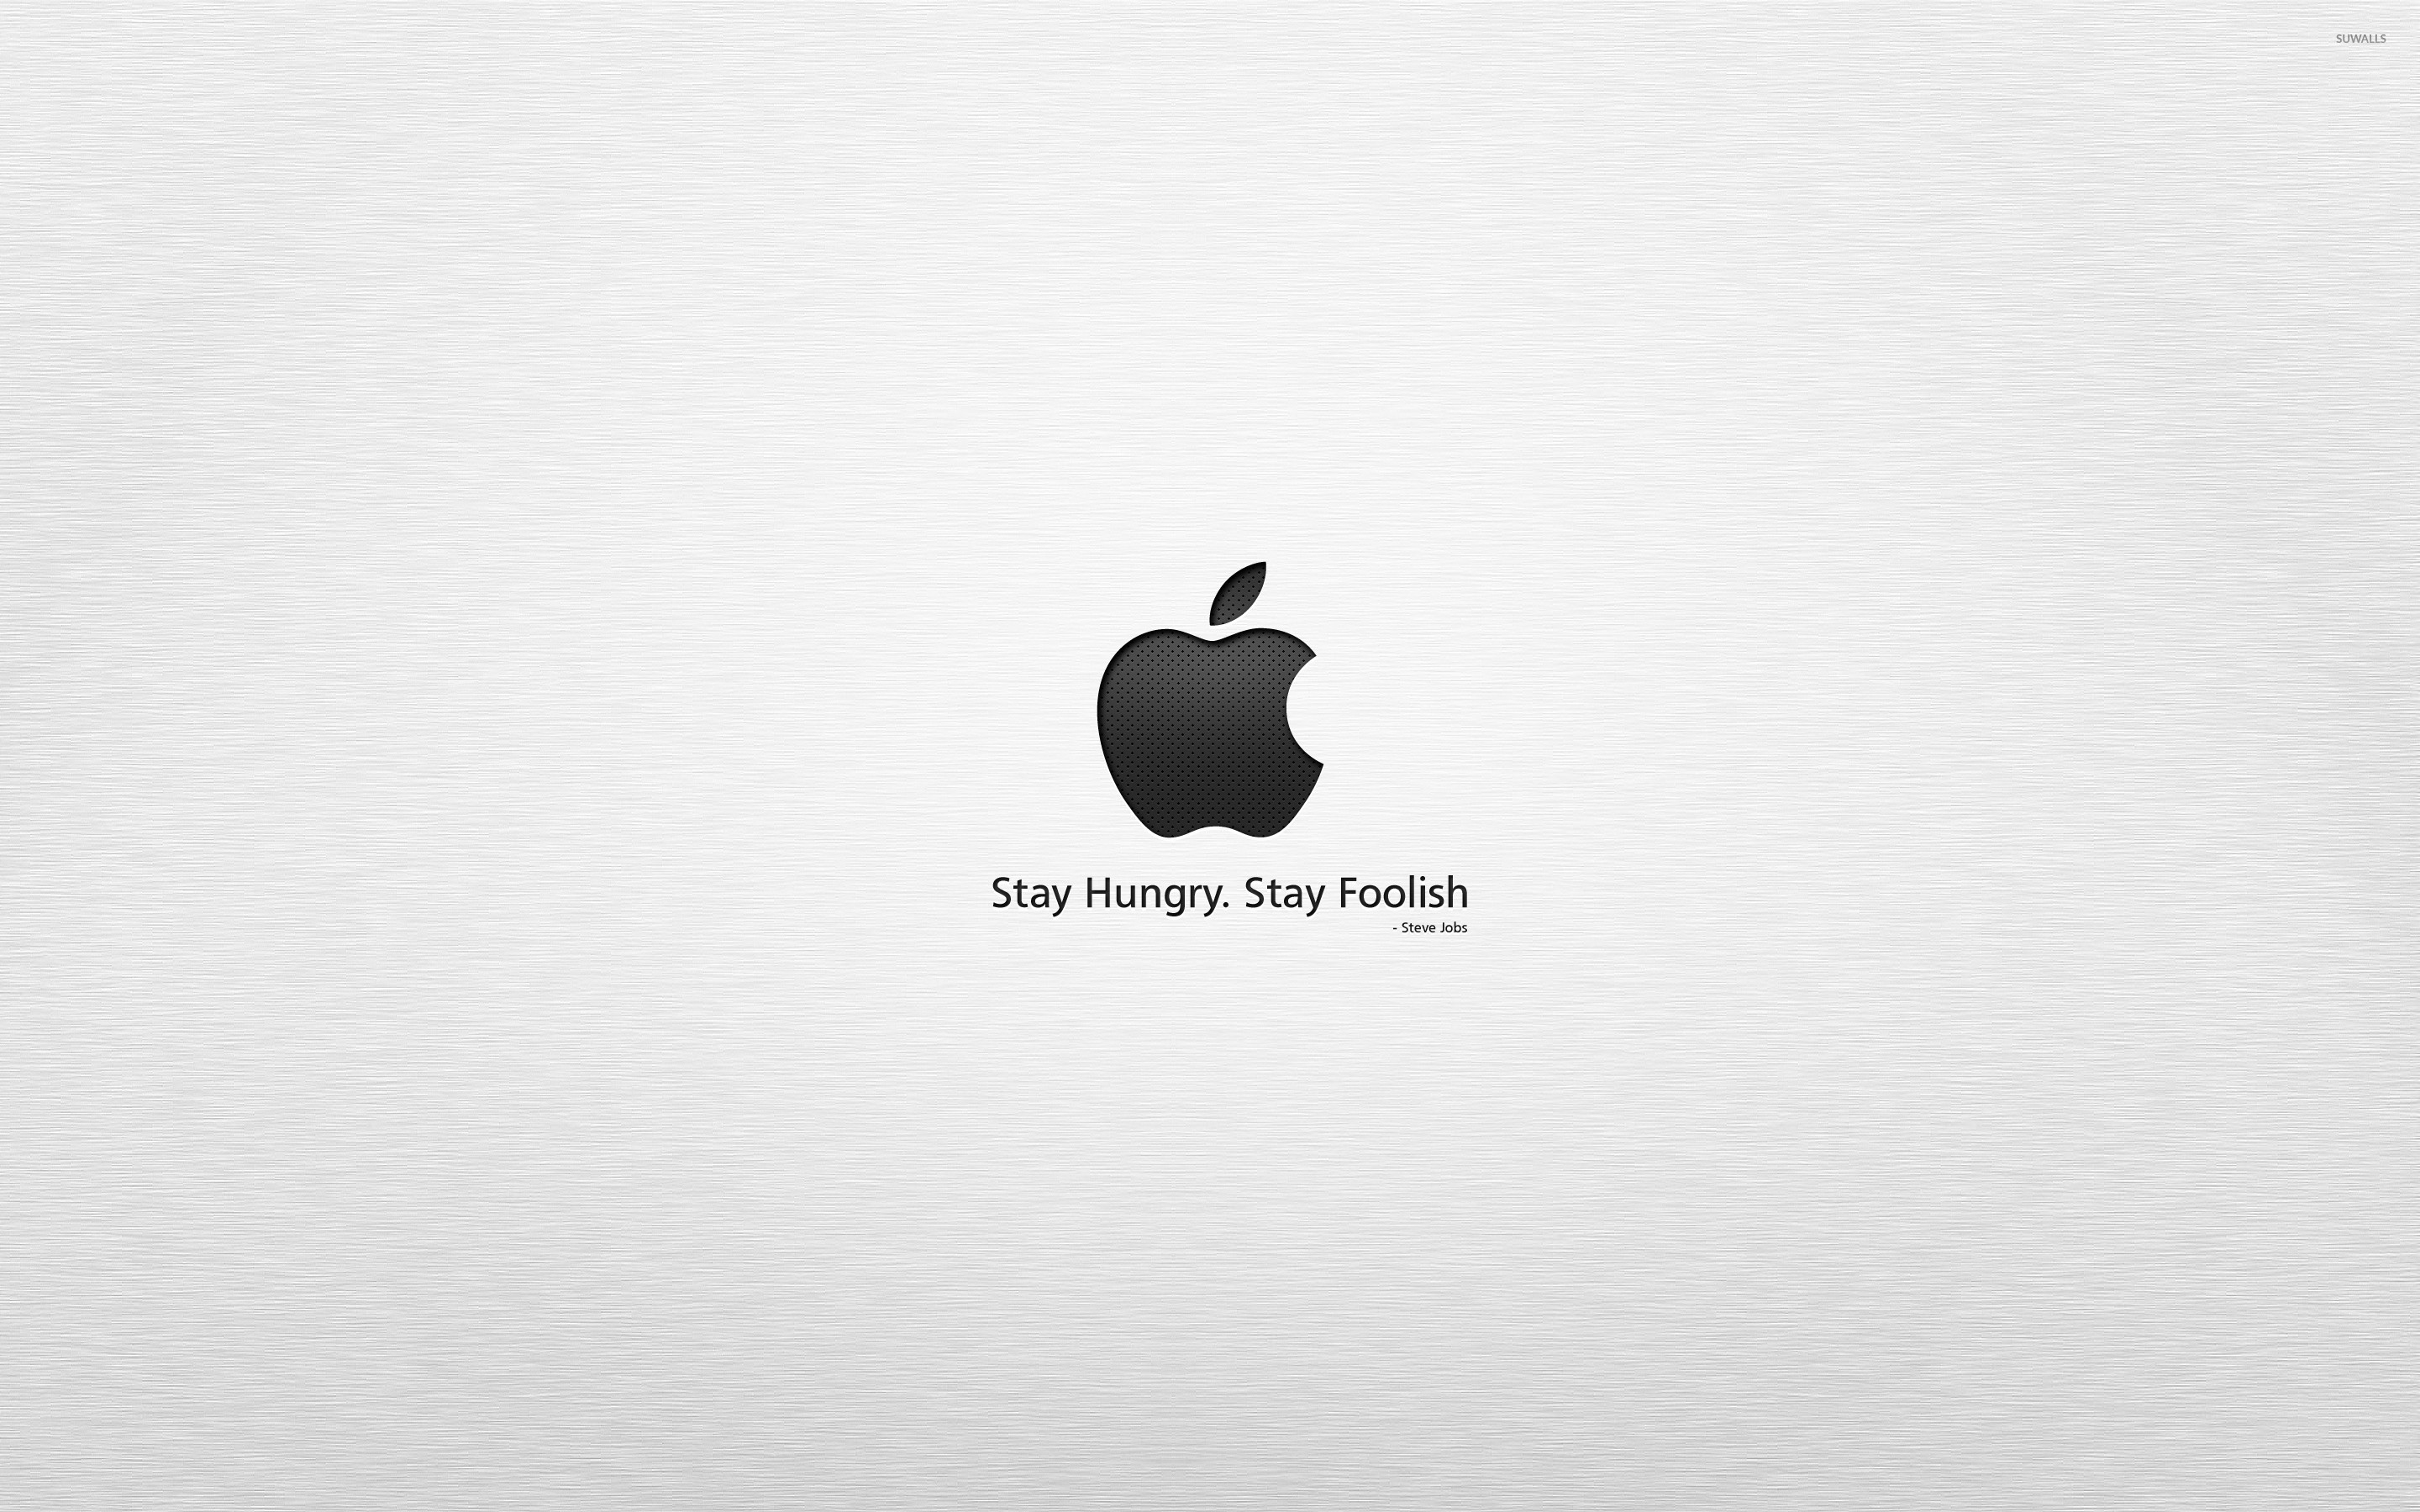 Stay Hungry Foolish Wallpaper